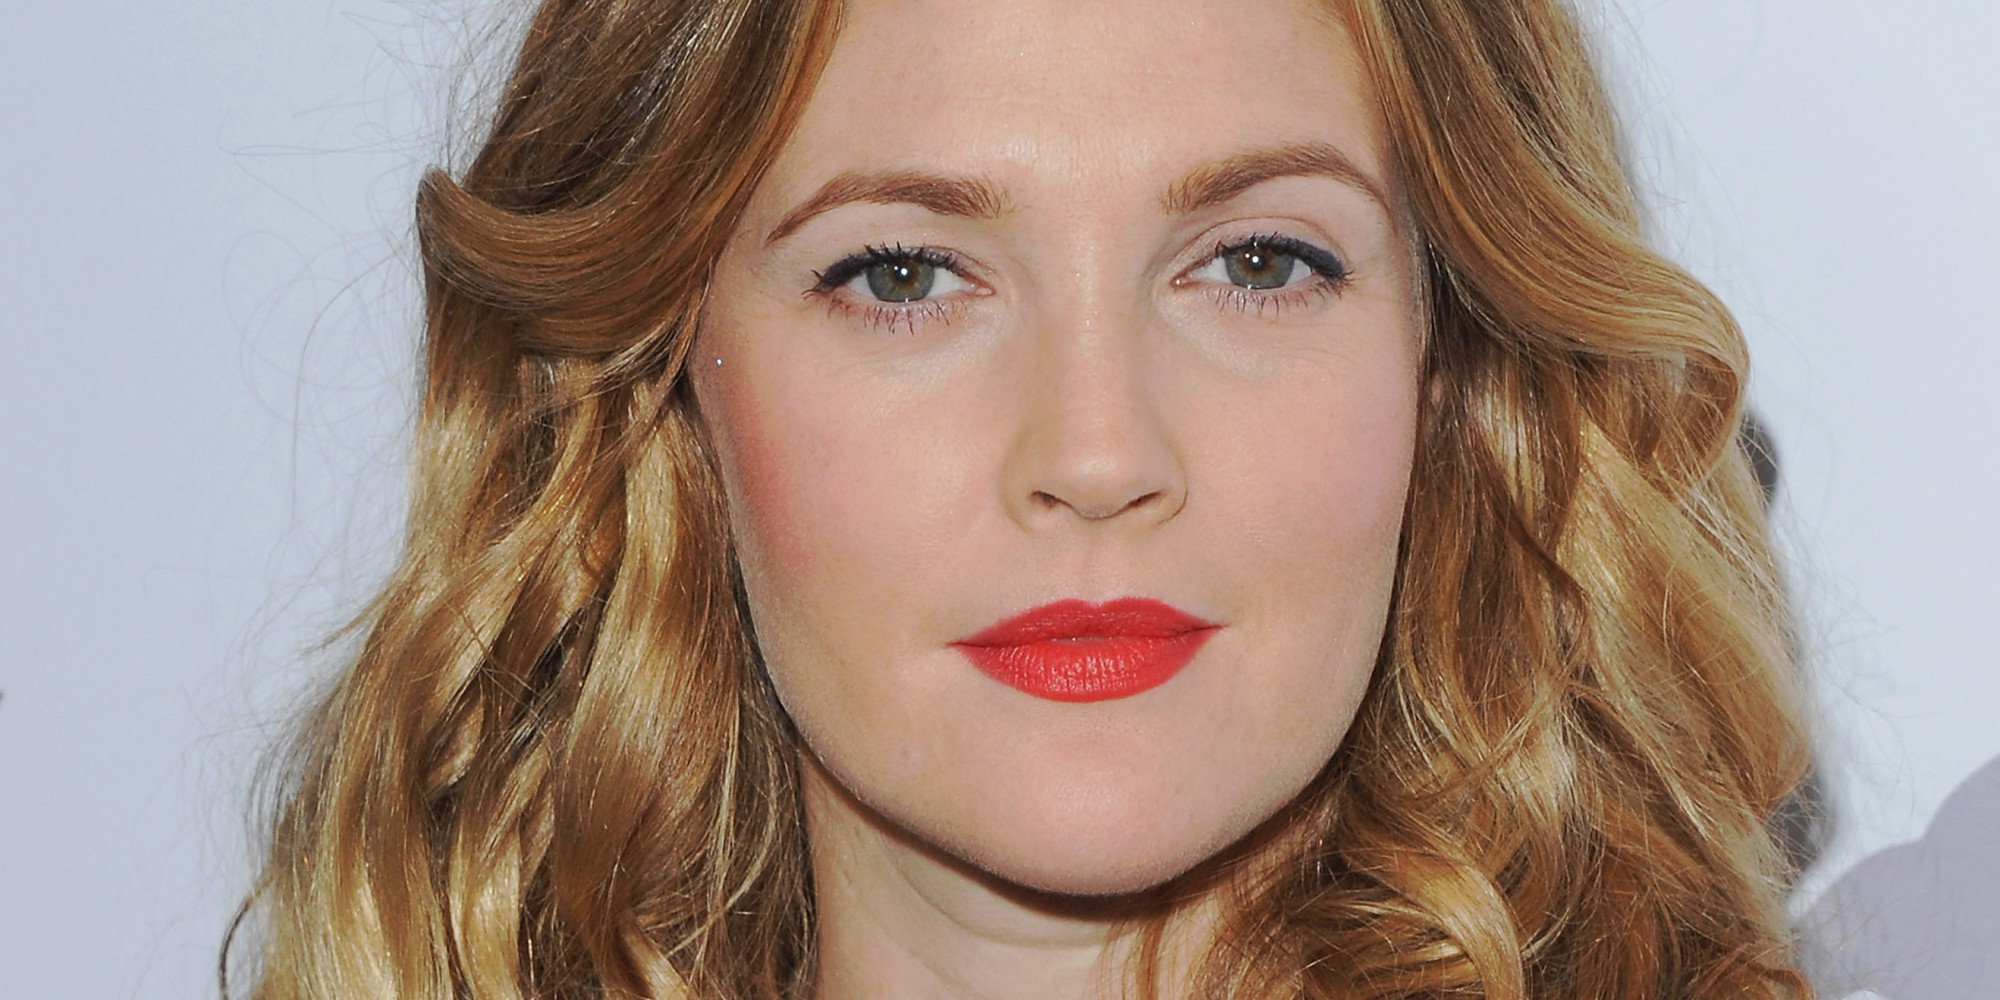 Drew Barrymore Gets Candid About Appreciating Your 'Saggy, Weird' Body ... Drew Barrymore